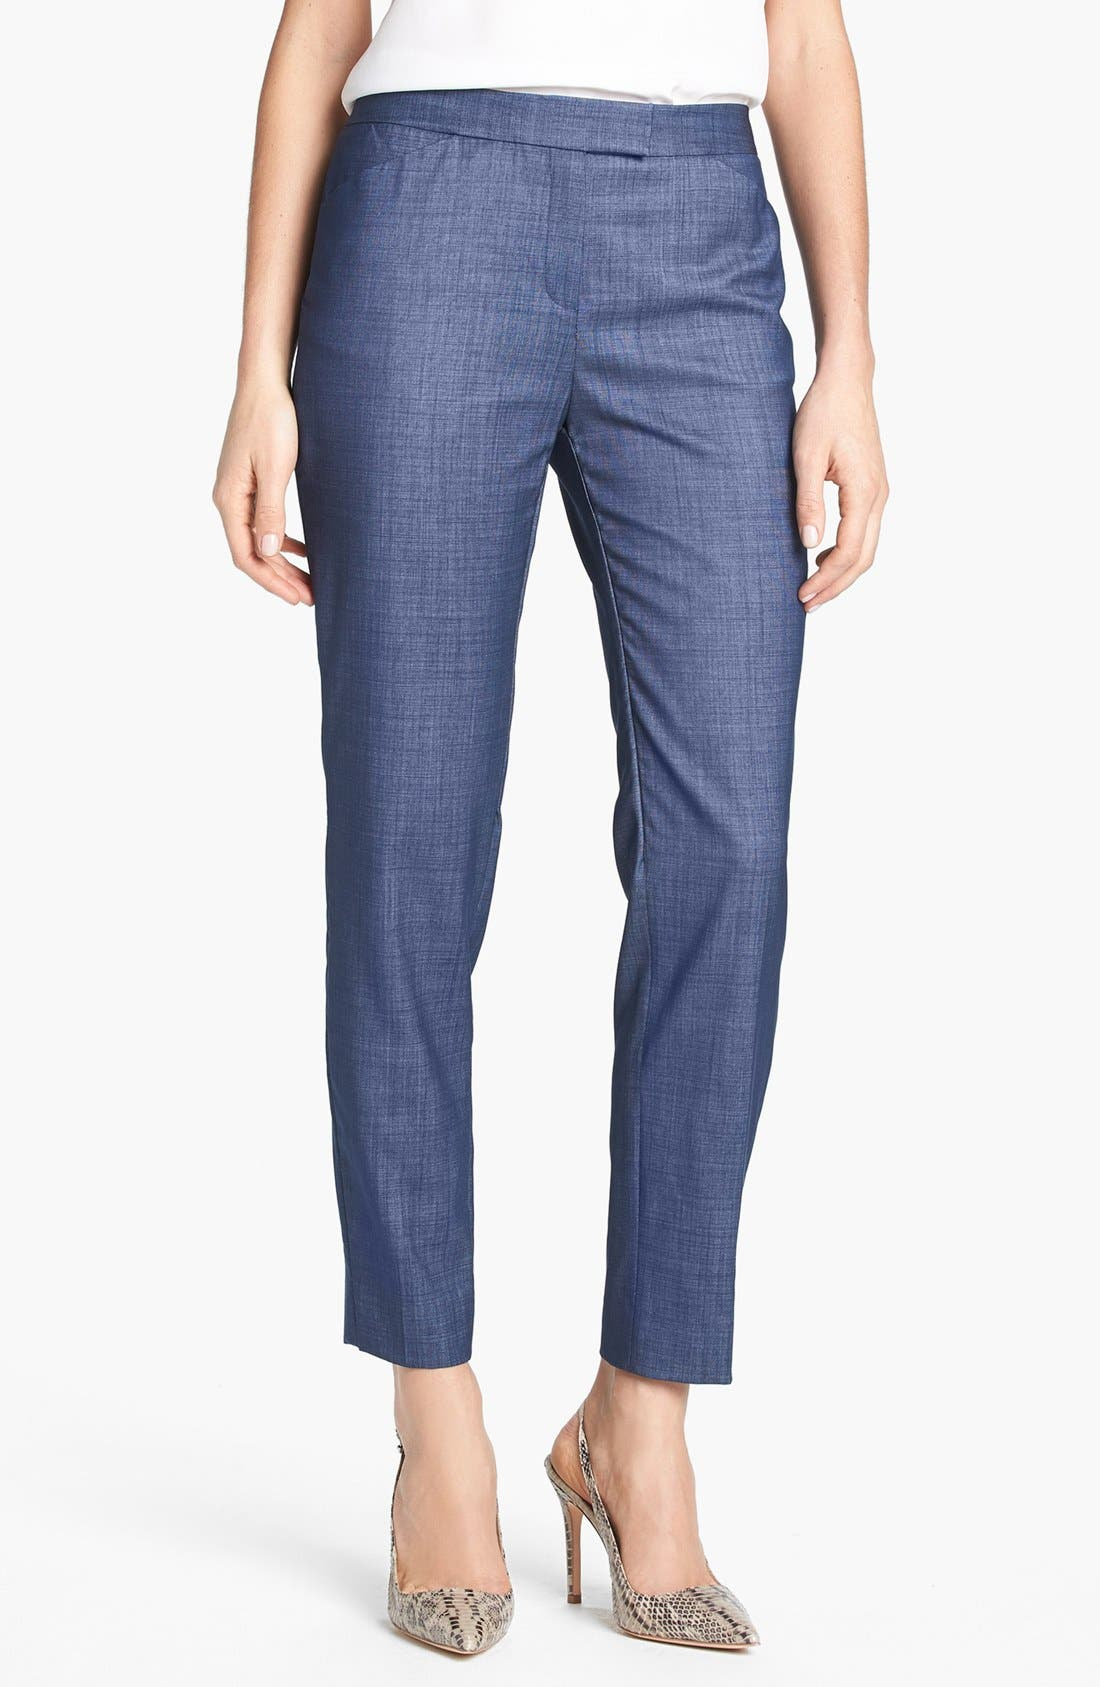 Alternate Image 1 Selected - Lafayette 148 New York 'Irving - Regent Suiting' Pants